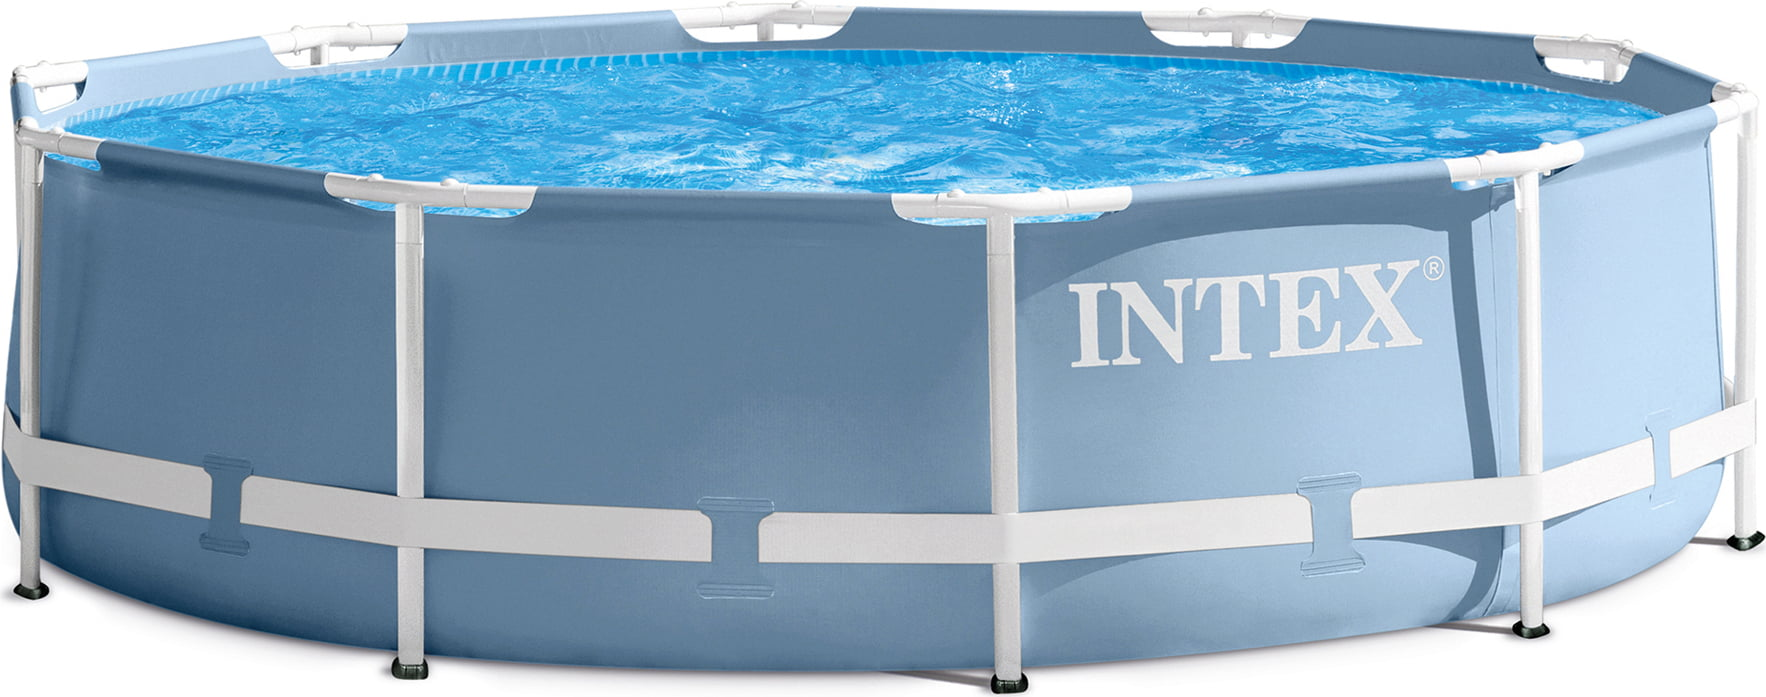 Intex Zwembad 549 X 122 Intex Frame Pool Rondo Prism Ø 457 X 122 Cm